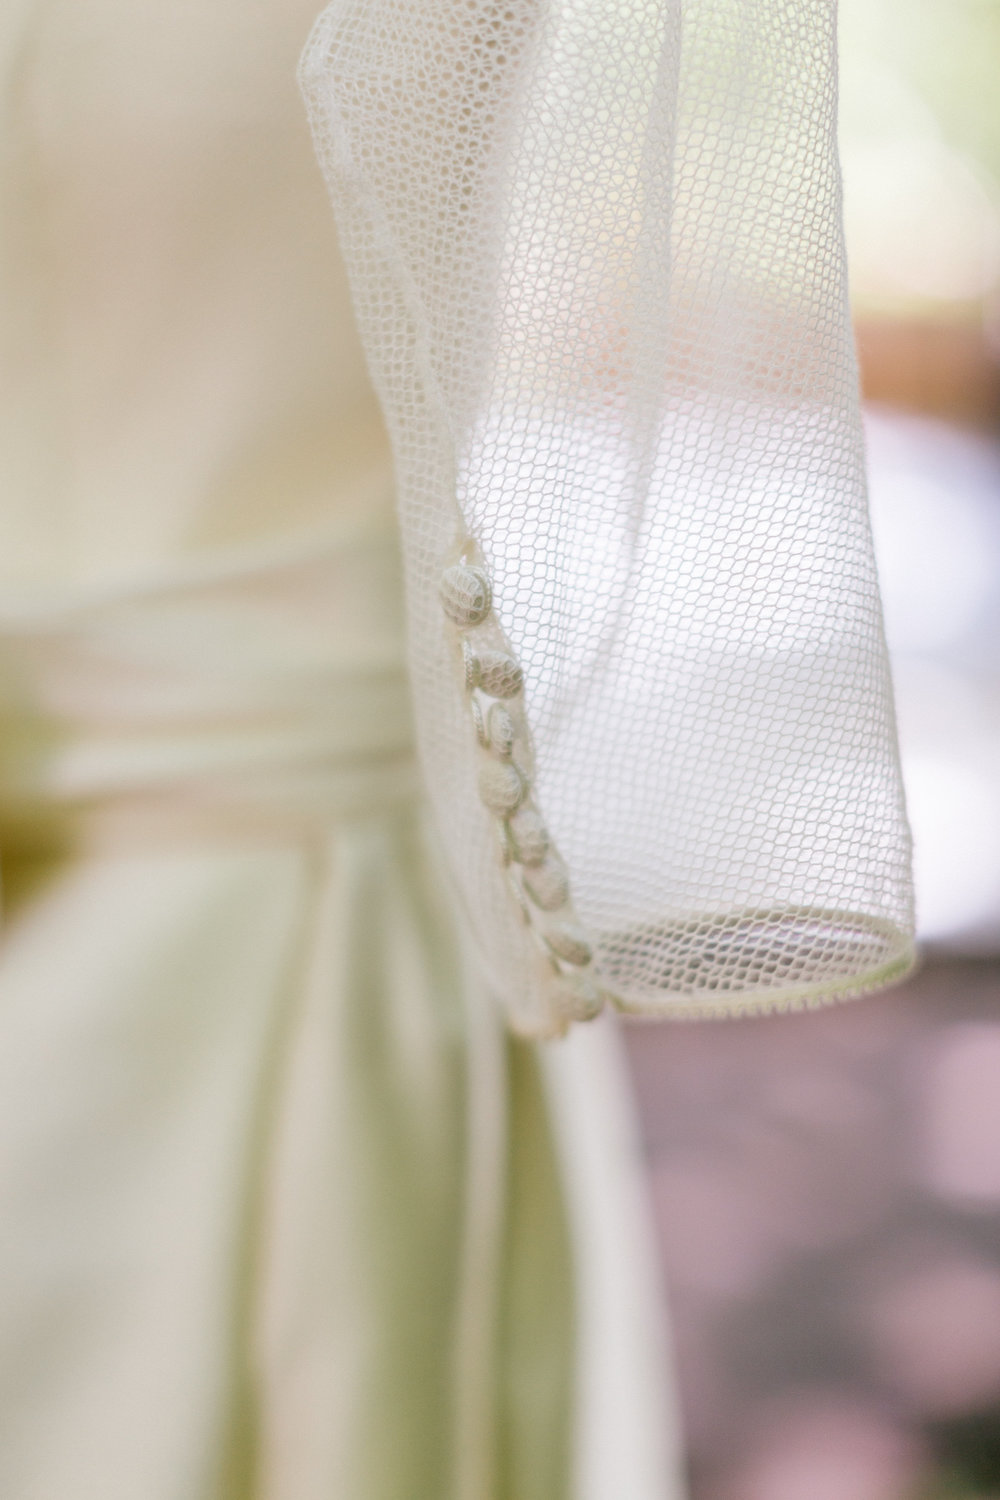 Allison_Hopperstad_Photography_Acowsay_Wedding_Dress_Details.JPG